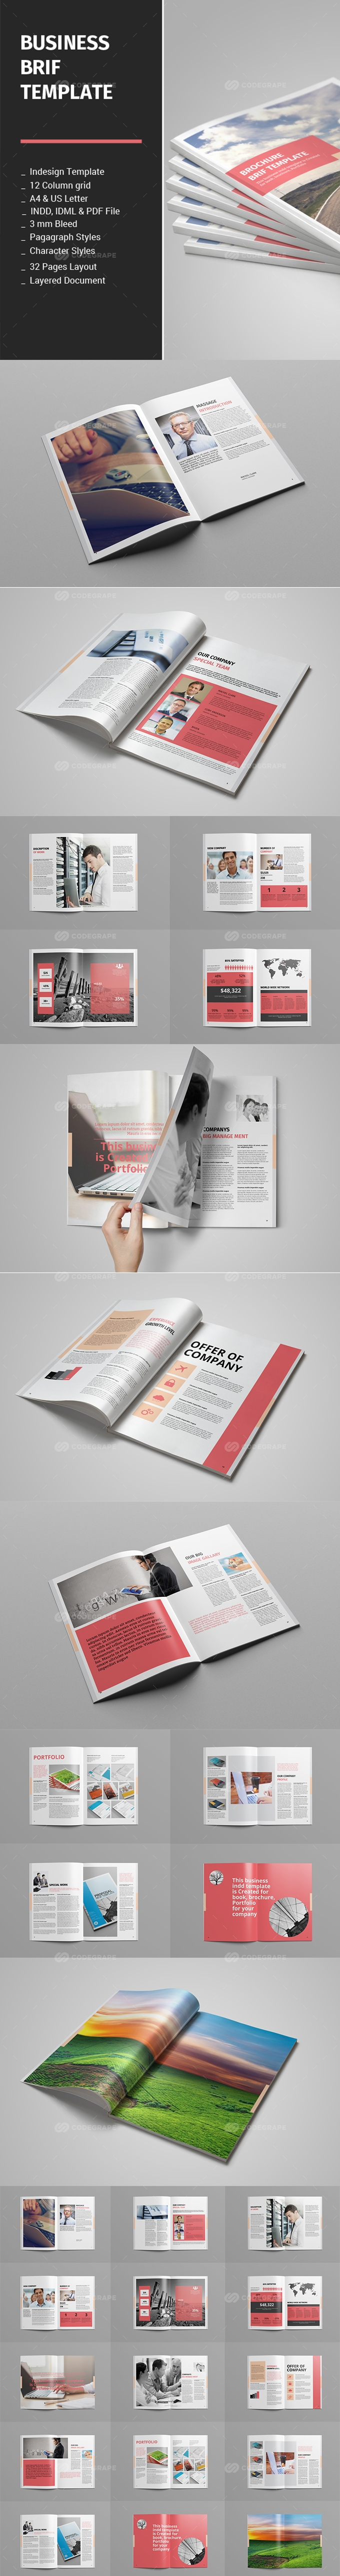 Business Brif Template